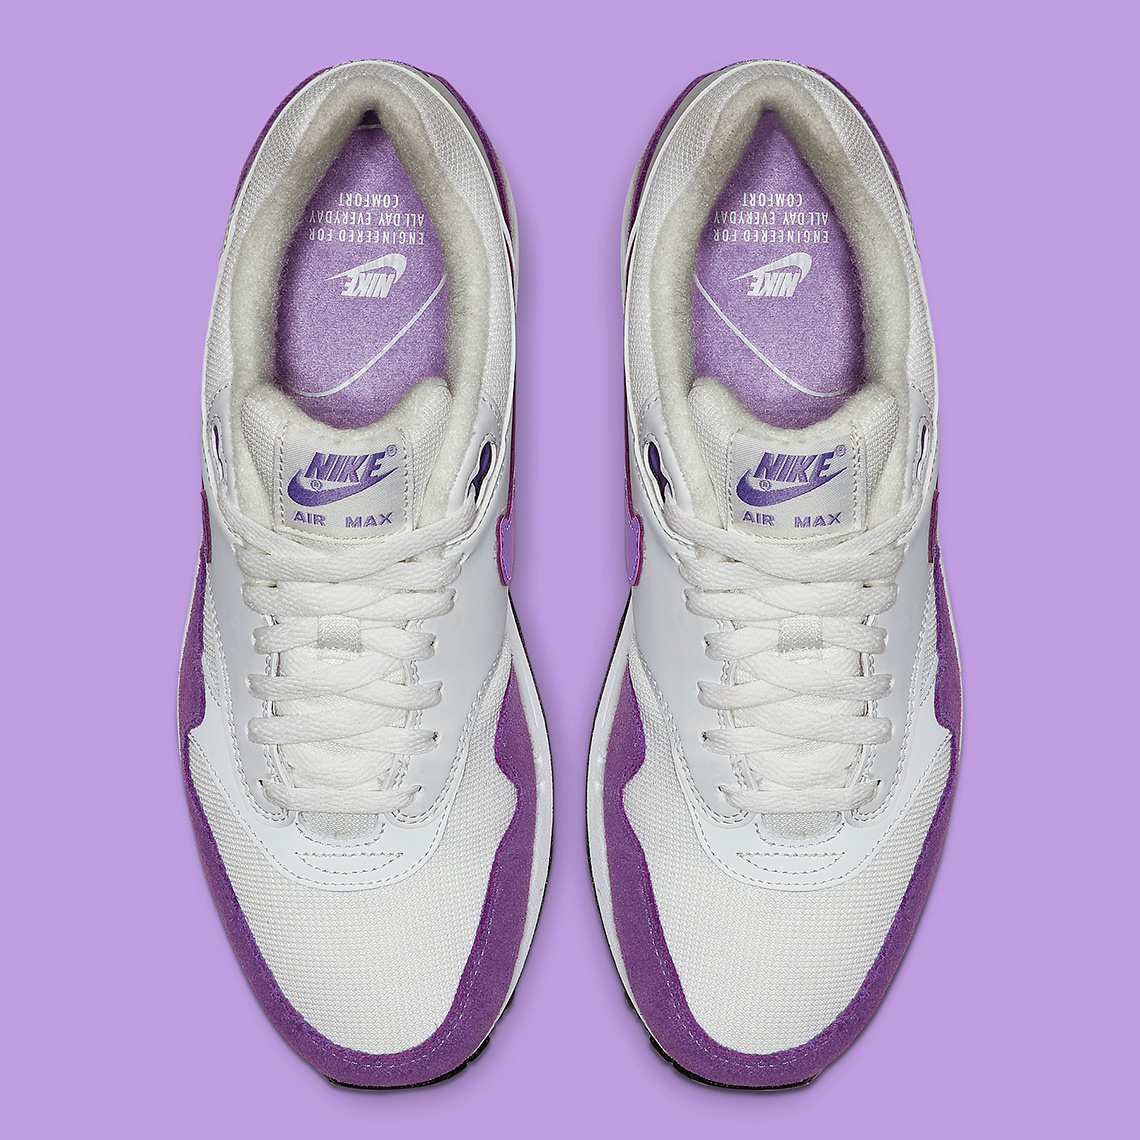 cheap for discount genuine shoes aliexpress Nike Air Max 1 Atomic Violet 319986-118 Release Info ...